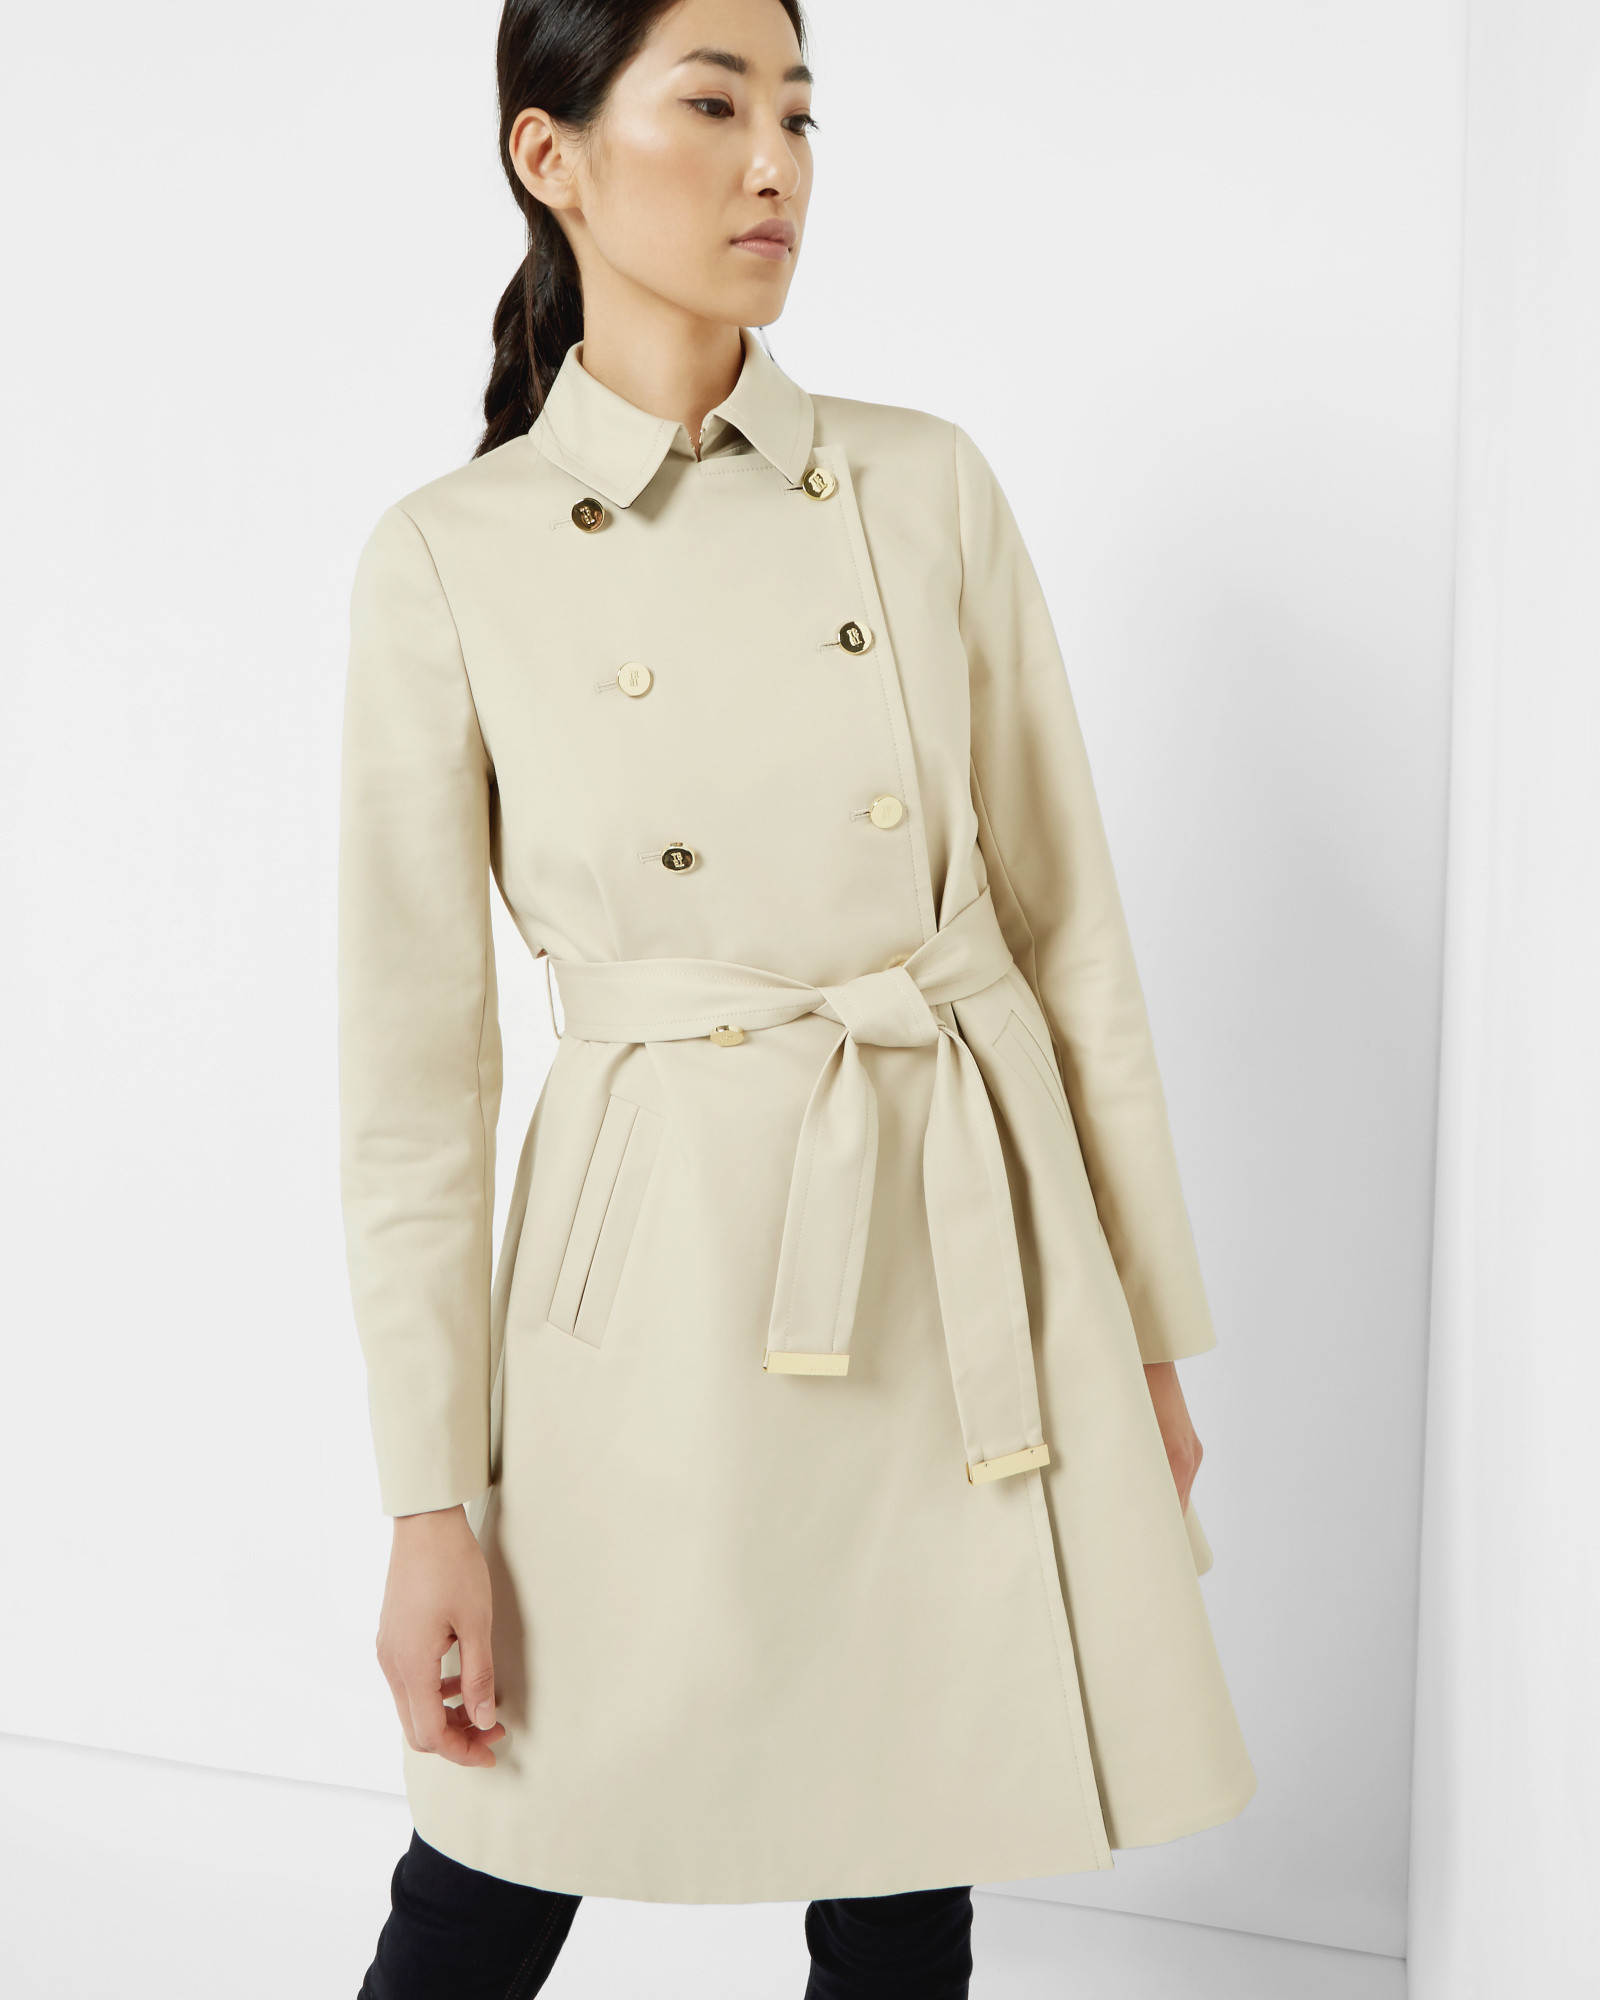 85764507c1d63a Lyst - Ted Baker Double Breasted Trench Coat in Natural